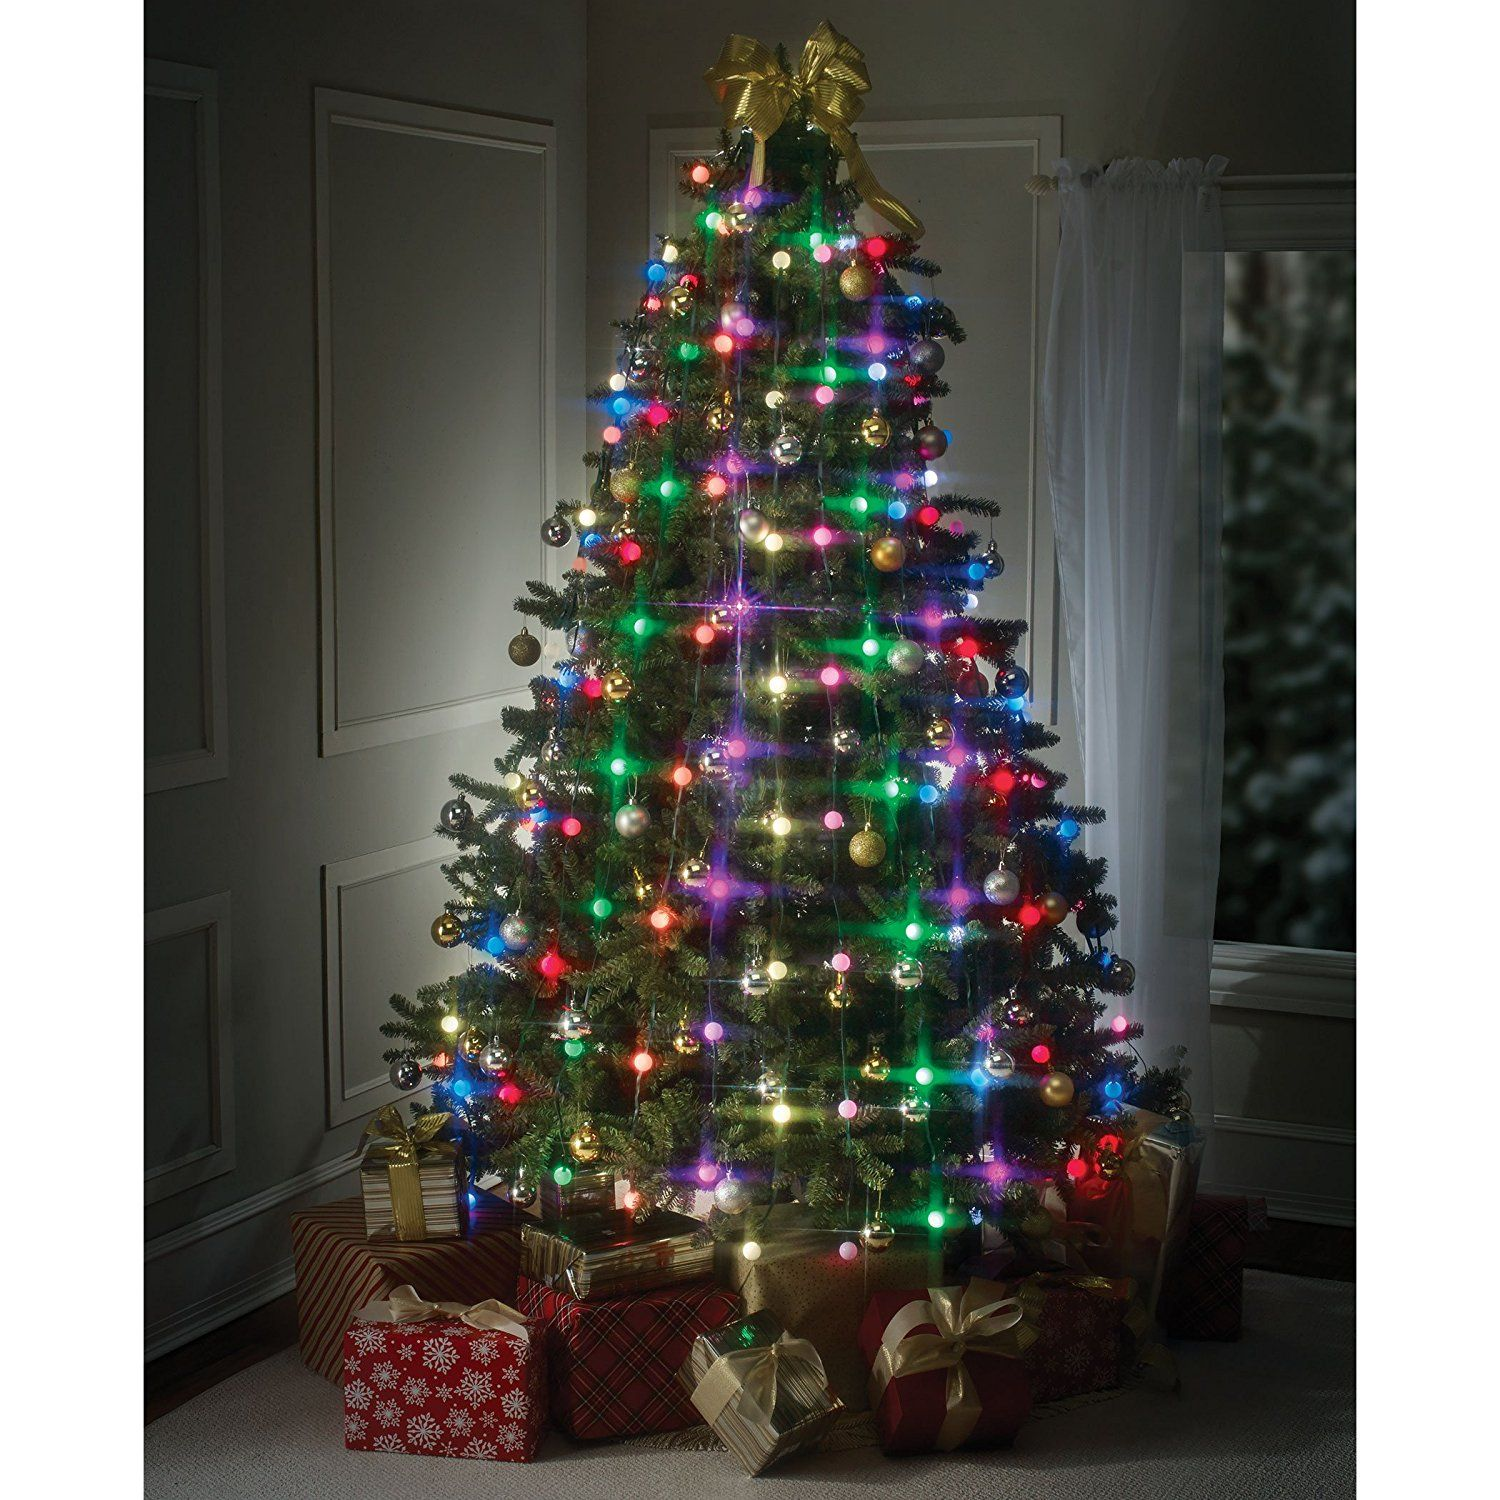 amazoncom tree dazzler easy setup led christmas lights and christmas light displays by bulbhead home kitchen - Amazon Led Christmas Lights